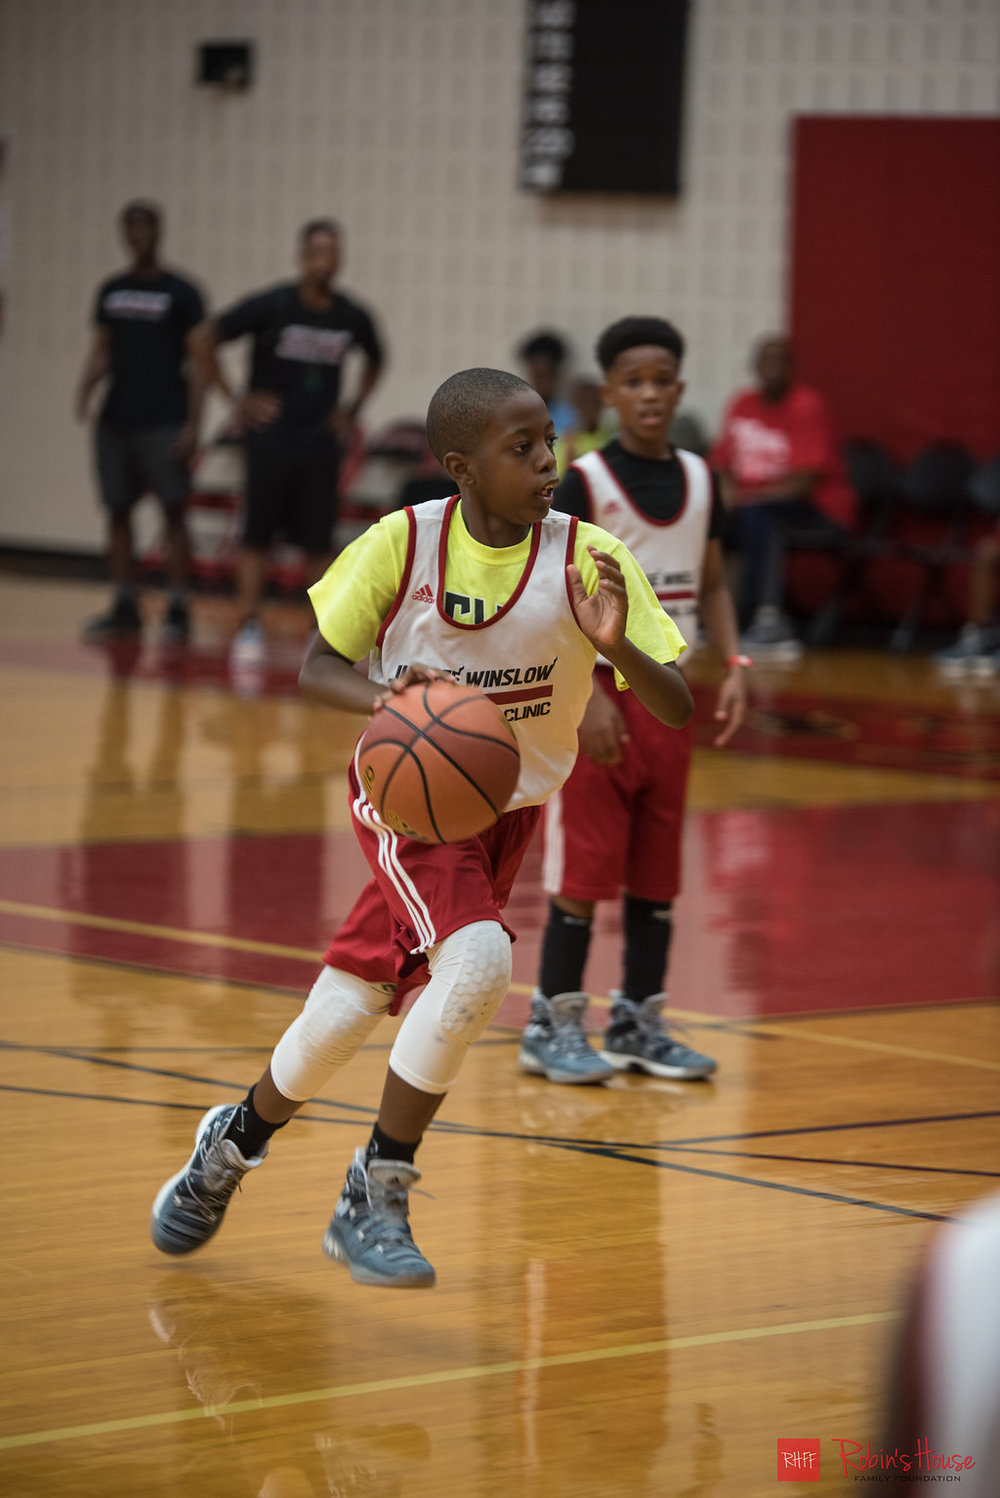 rhff_basketball_clinic_sunday-44.jpg